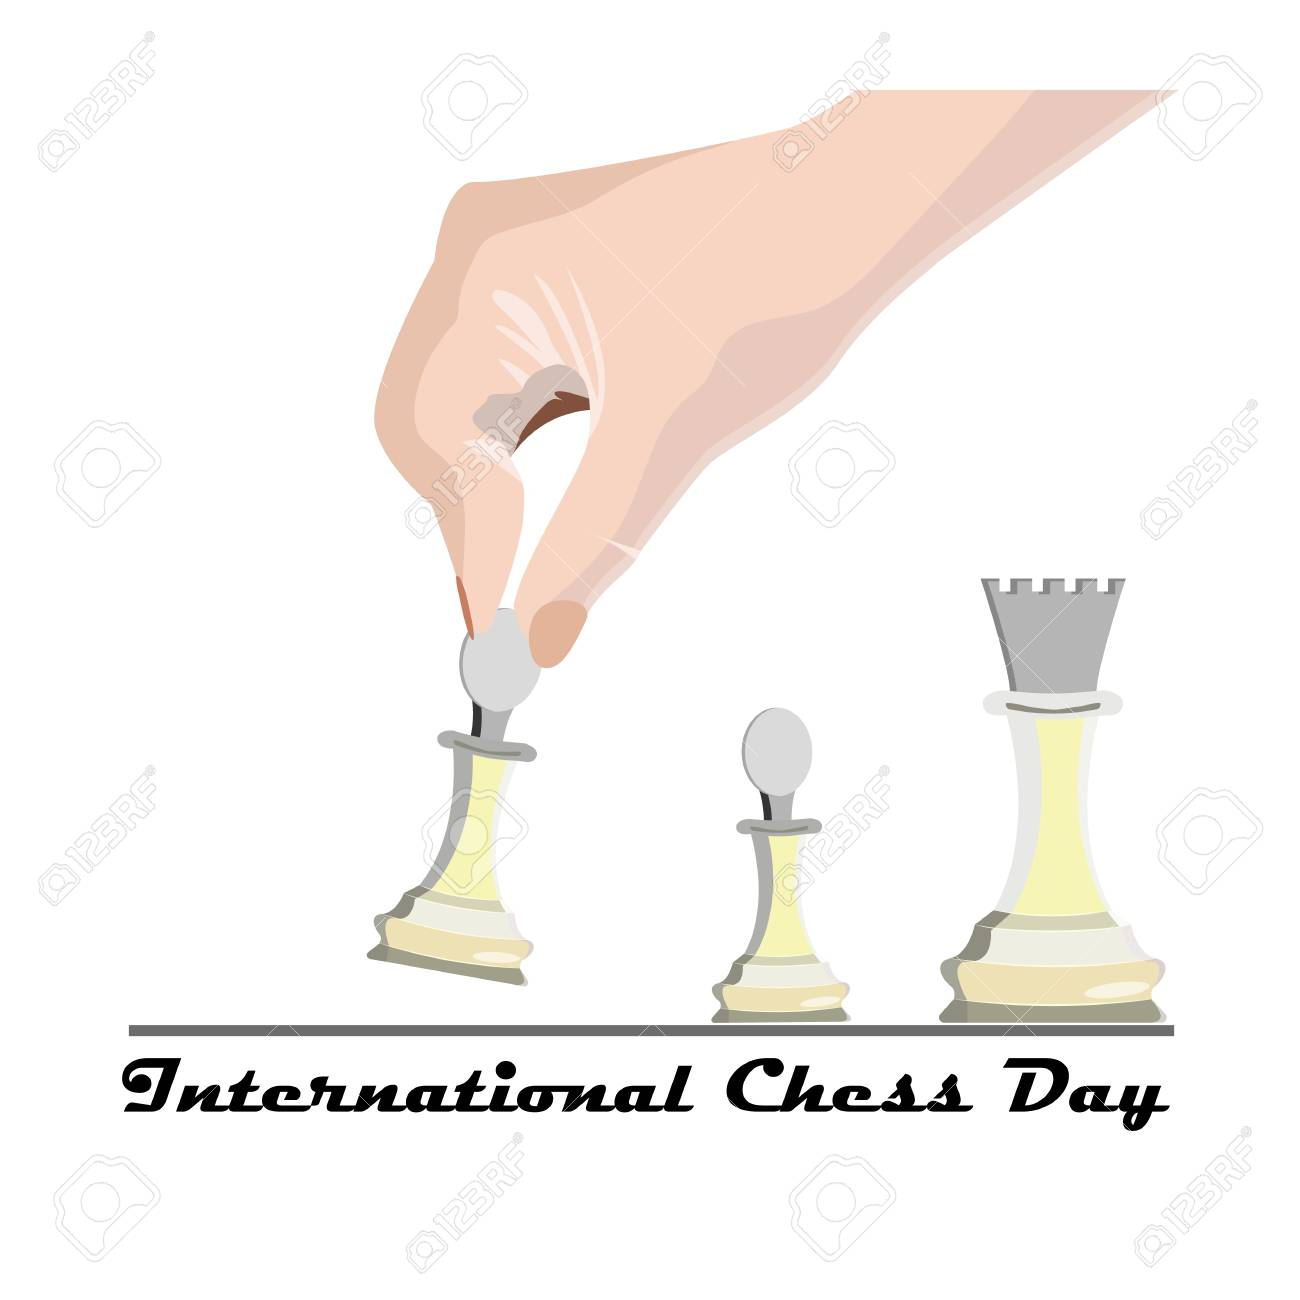 International Chess Day, vector illustration with a hand of a player's hand, making the first move in a chess game - 103828145